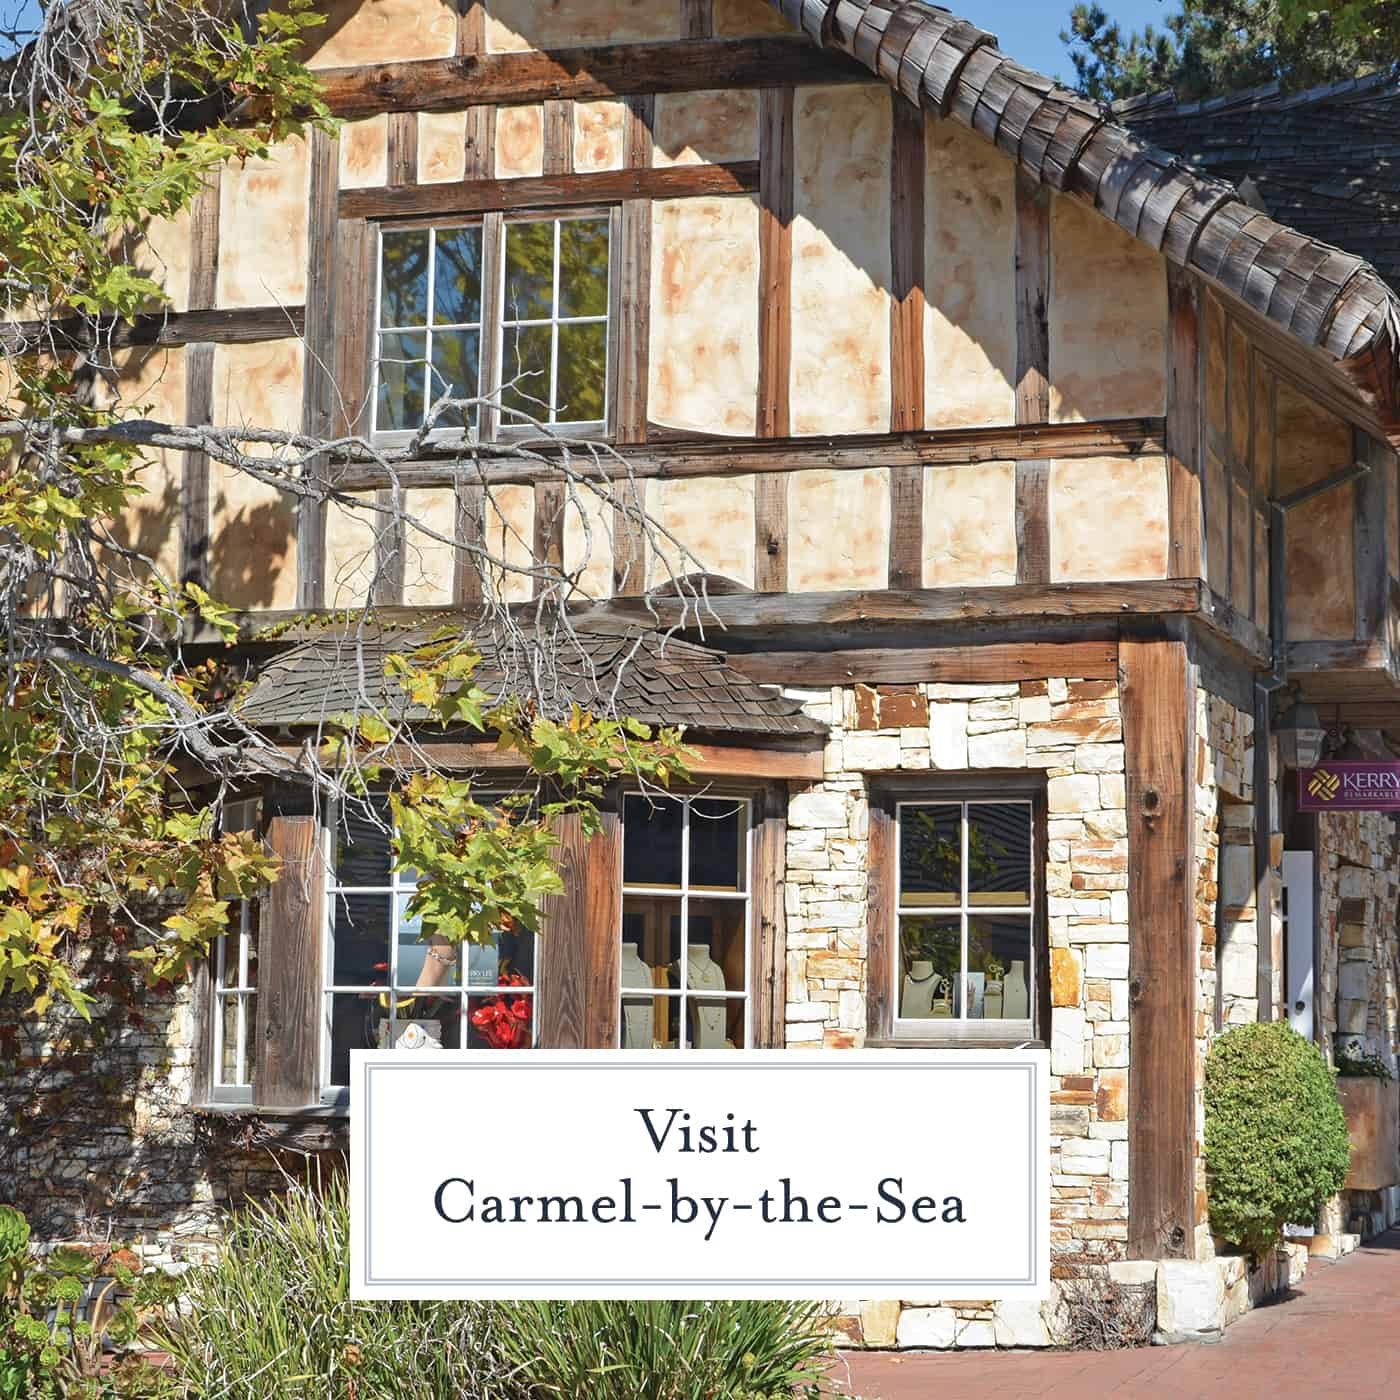 Guide to planning a day trip to Carmel-by-the-Sea including where to eat, historical relevance and interesting facts about this quaint little town. #carmelbythesea #california www.savoryexperiments.com